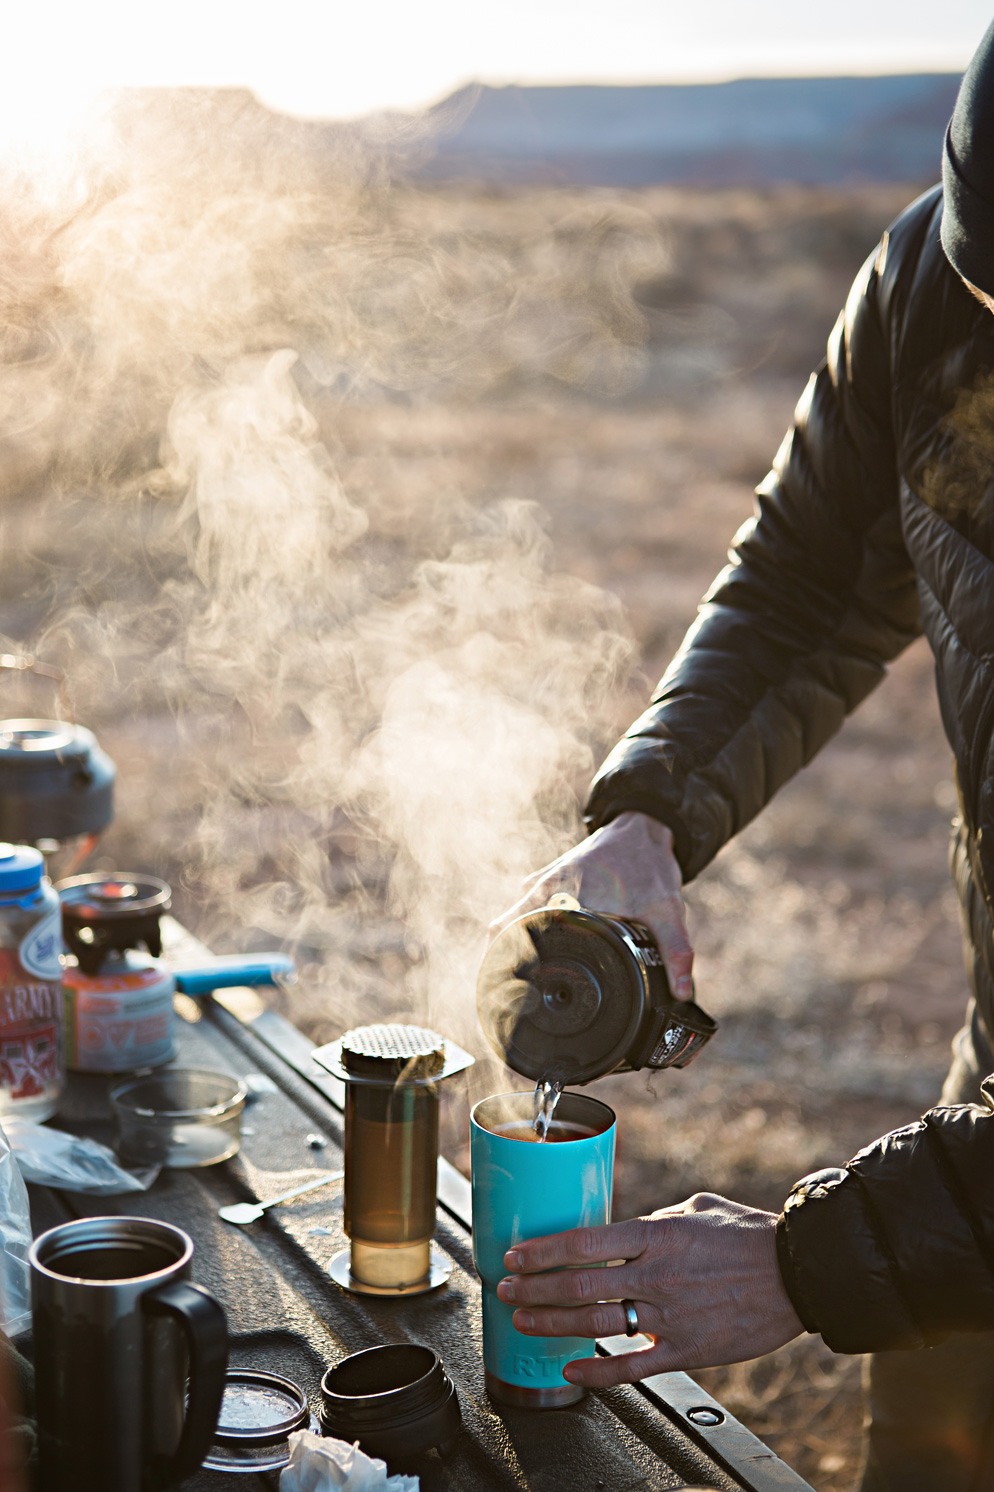 CindyGiovagnoli_Utah_Zion_desert_night_morning_coffee_blm_land_off_grid-008.jpg